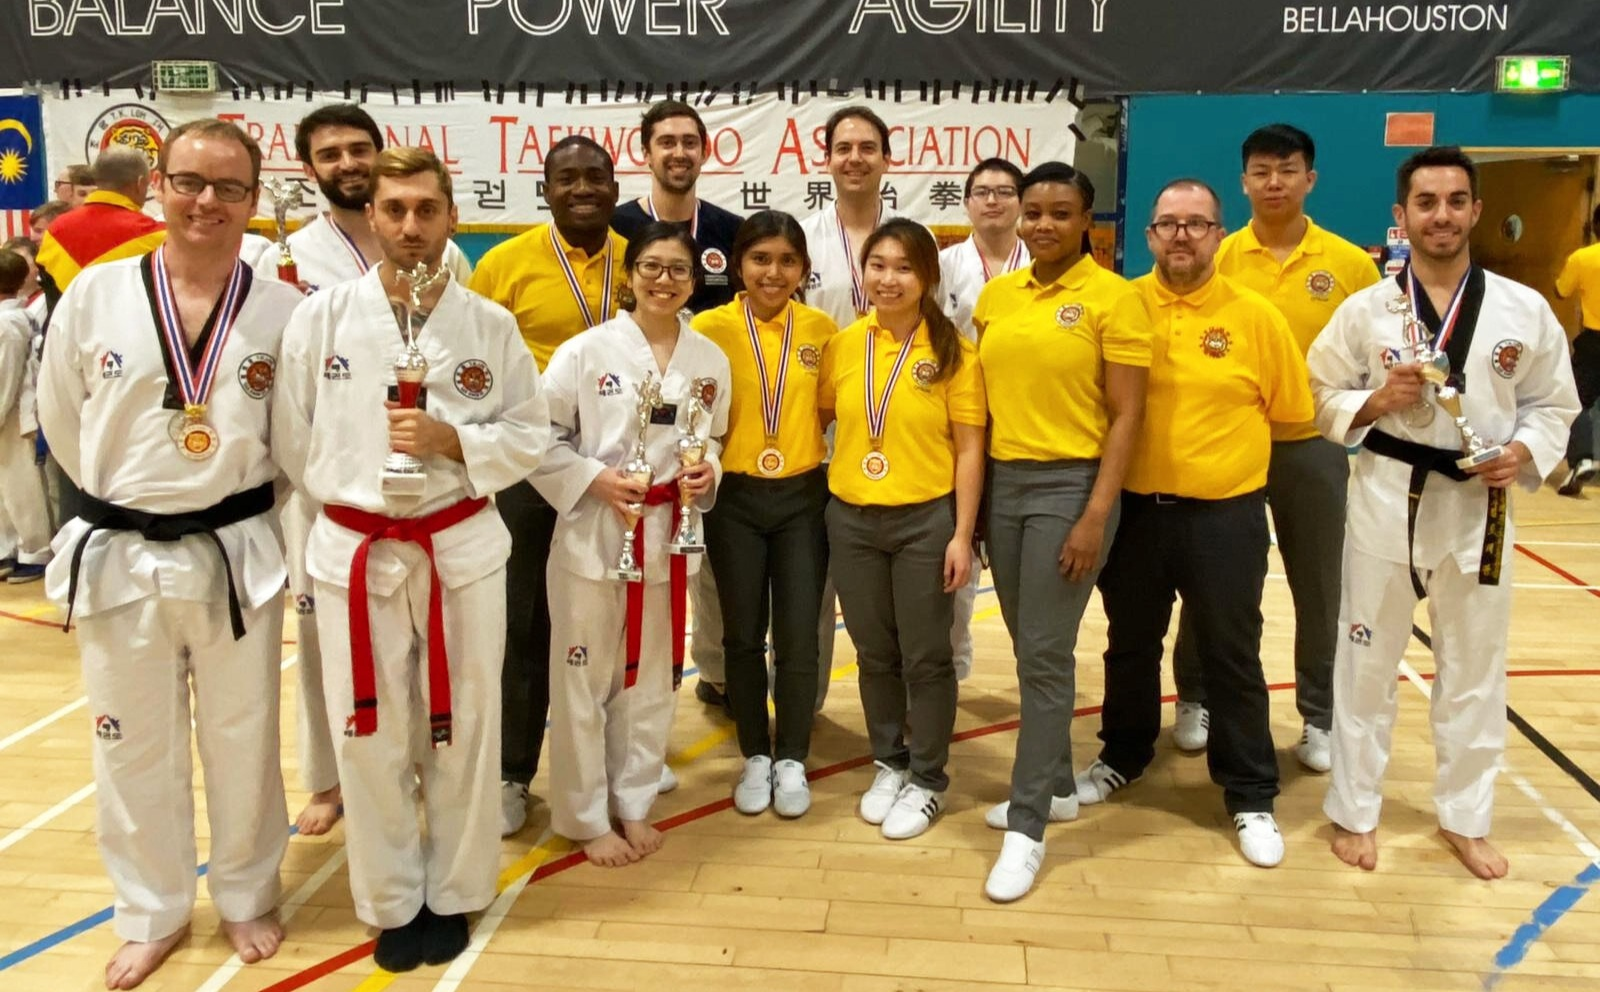 London Barbican came 4th overall in kyorugi, with 3 gold, 3 silver and 2 bronze medals.